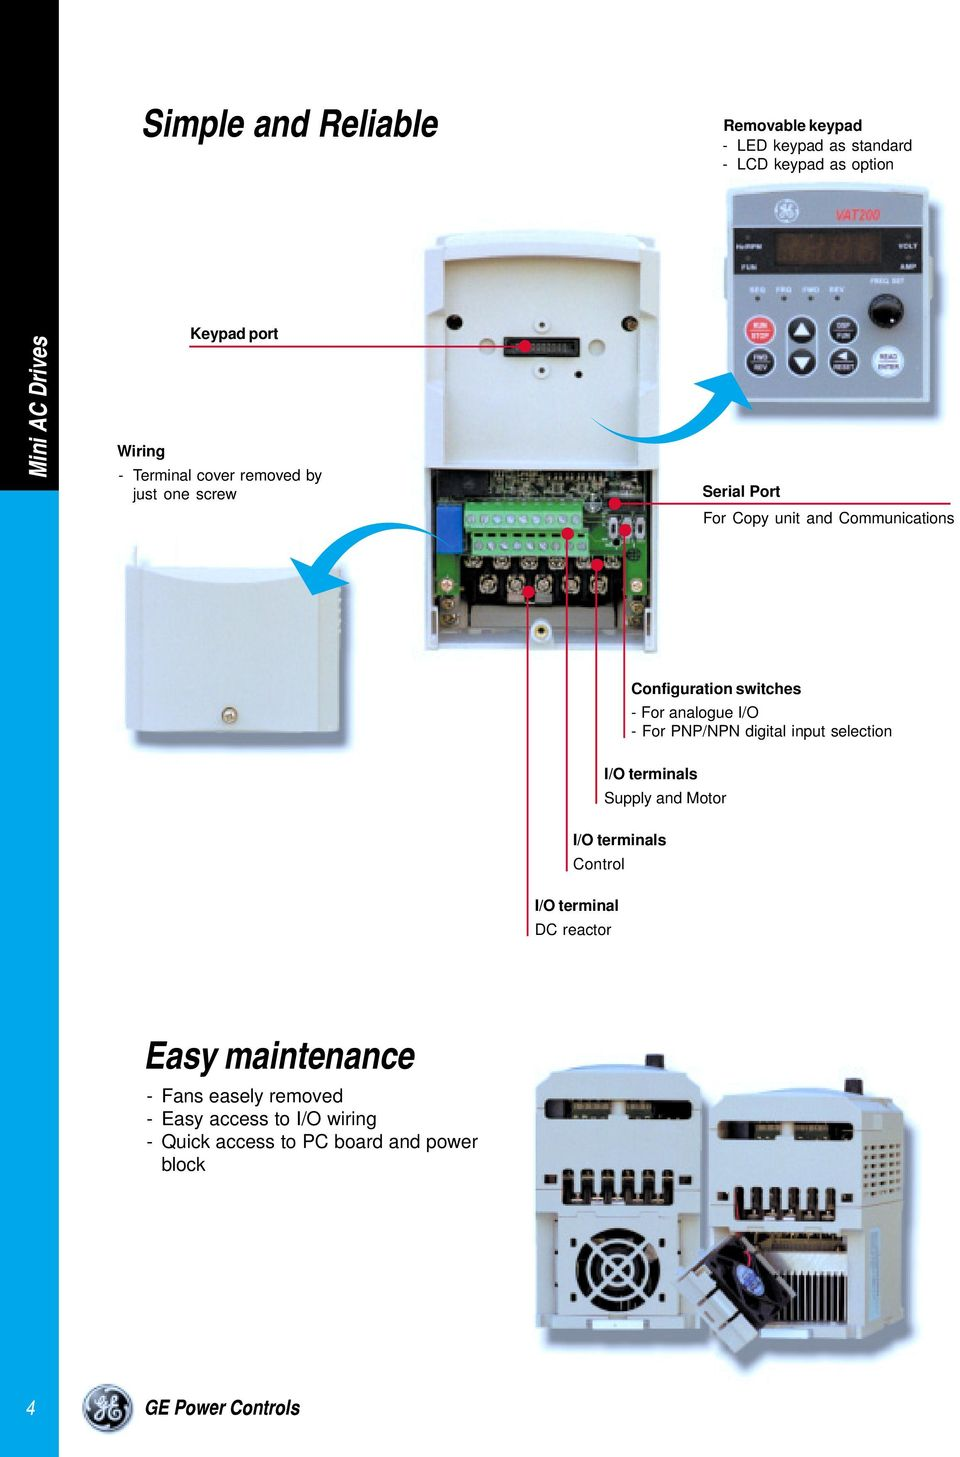 Vat 200 Mini Ac Drive Ge Power Controls Gepowercontrolscom Dc Reversing Relay Wiring Diagram Hecho Analogue I O For Pnp Npn Digital Input Selection Terminals Supply